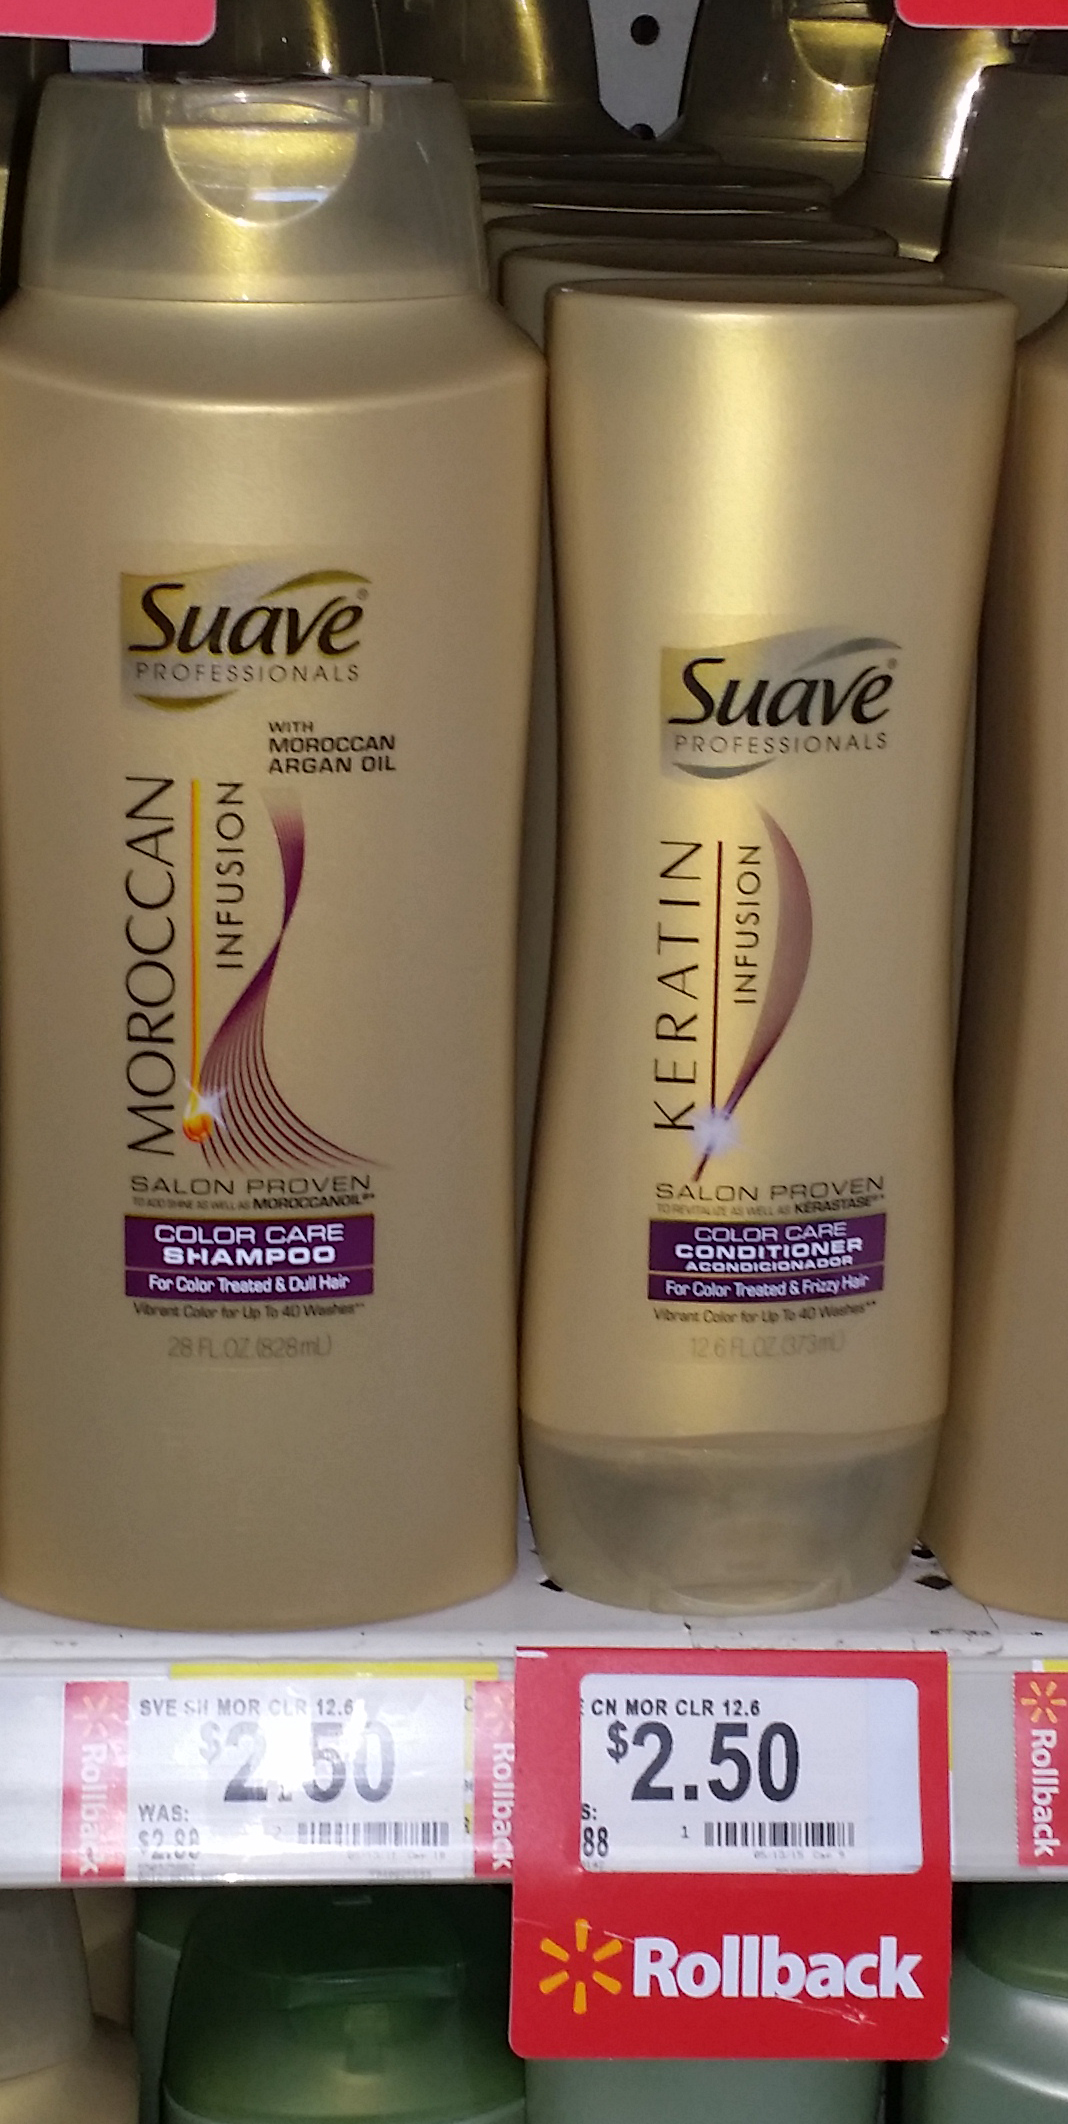 Suave Gold Infusion Shampoo Or Conditioner Just $1.00 at Walmart!